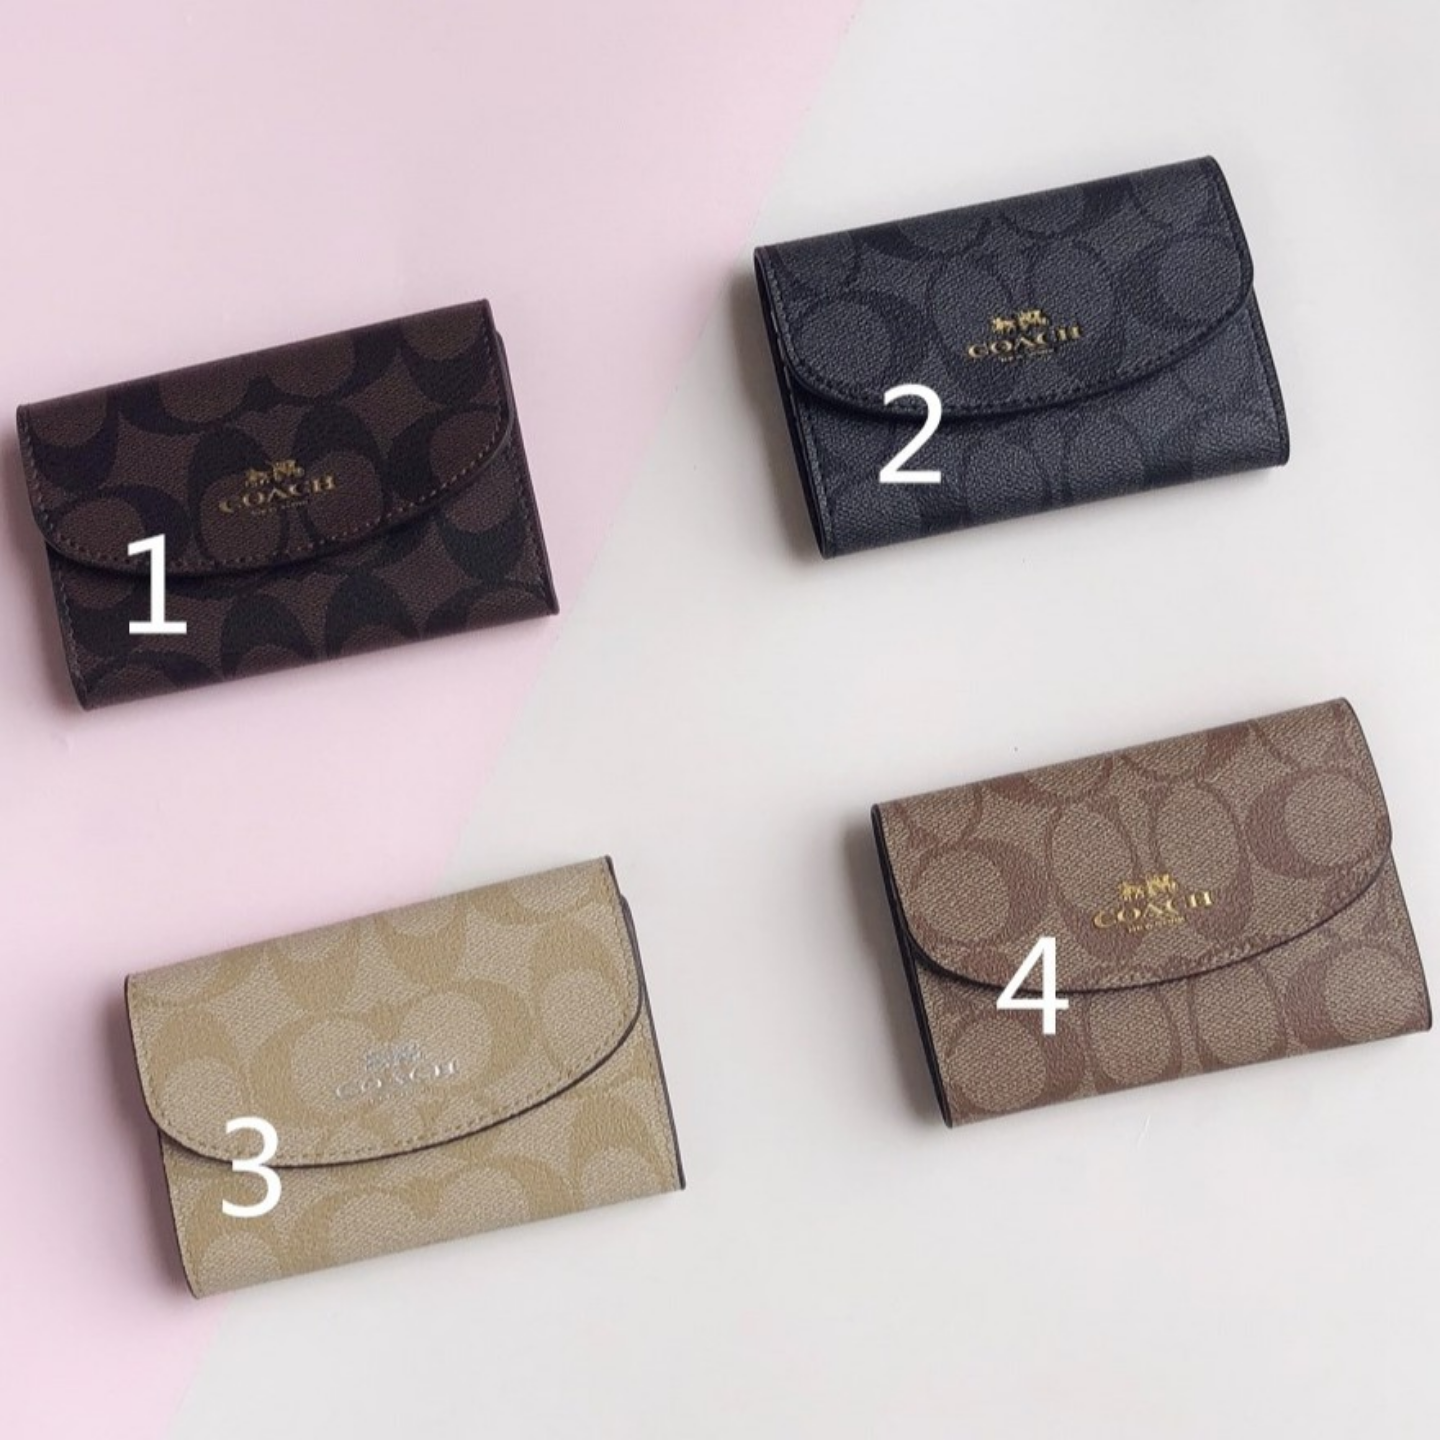 (SG COD) coach Small key pack for men and women is convenient and practical